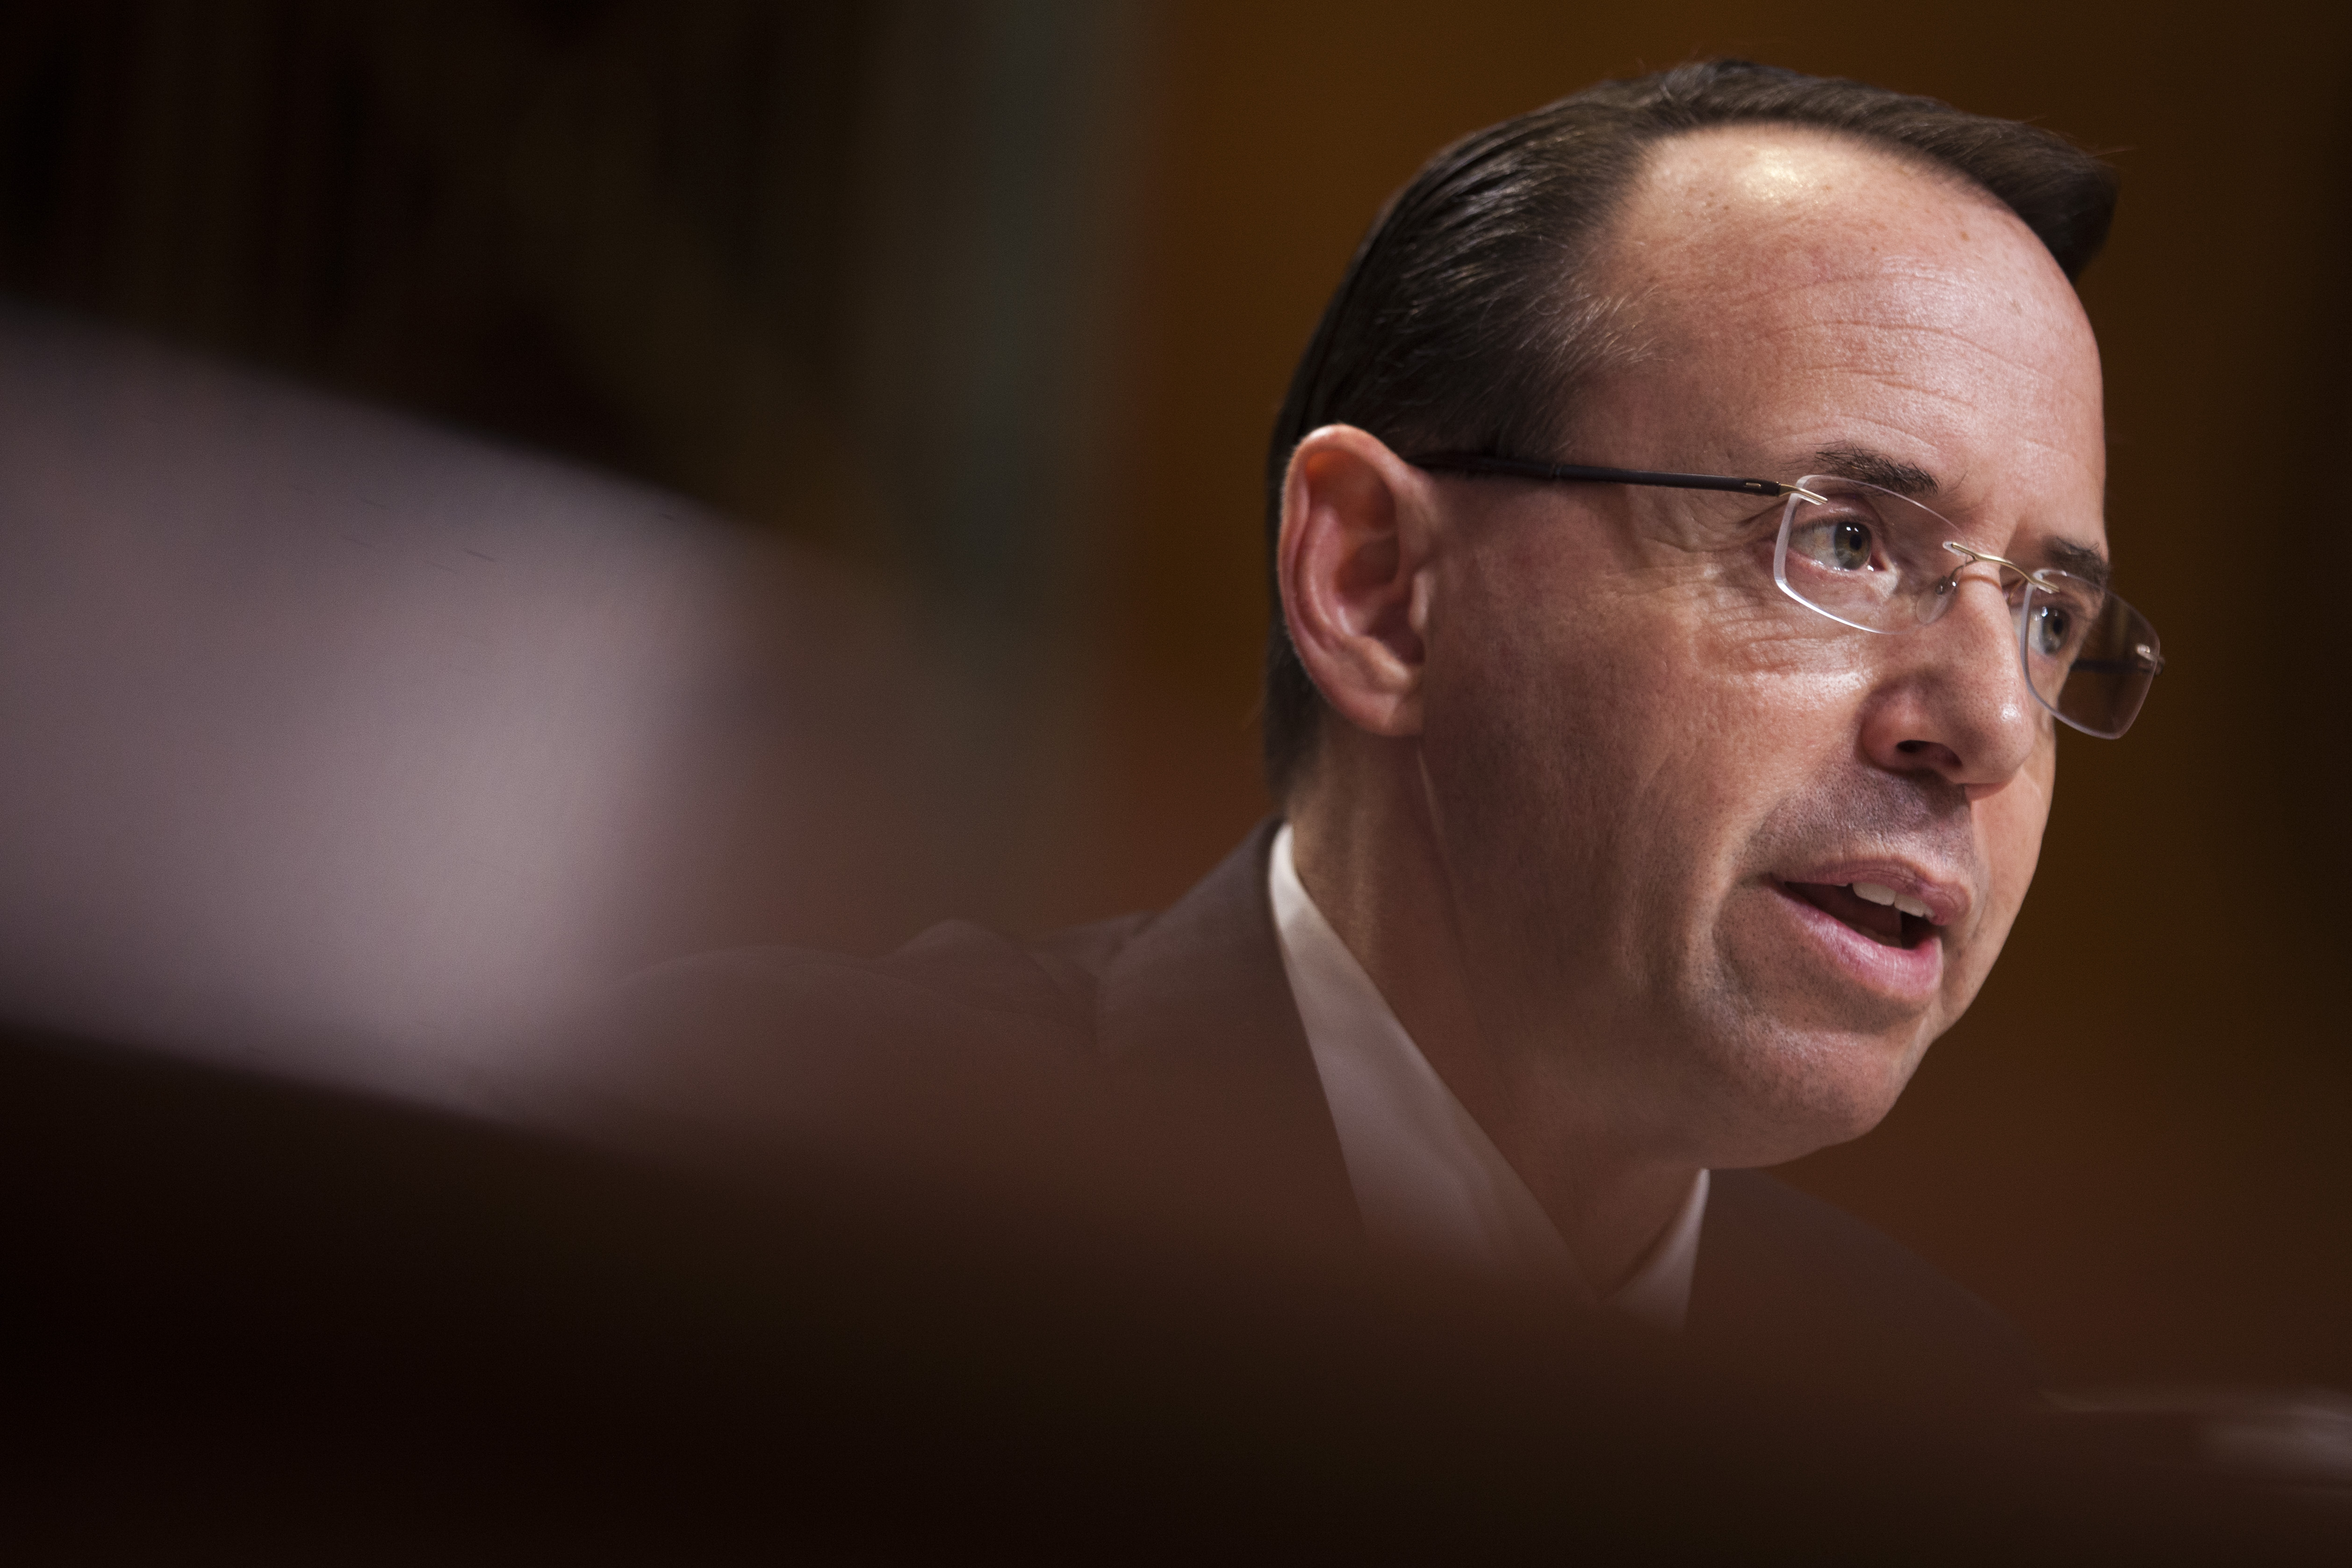 Deputy Attorney General Rod Rosenstein testifies during a Senate Commerce, Justice, Science, and Related Agencies Subcommittee hearing on the Justice Department's proposed FY18 budget  on Capitol Hill on June 13, 2017 in Washington, D.C.